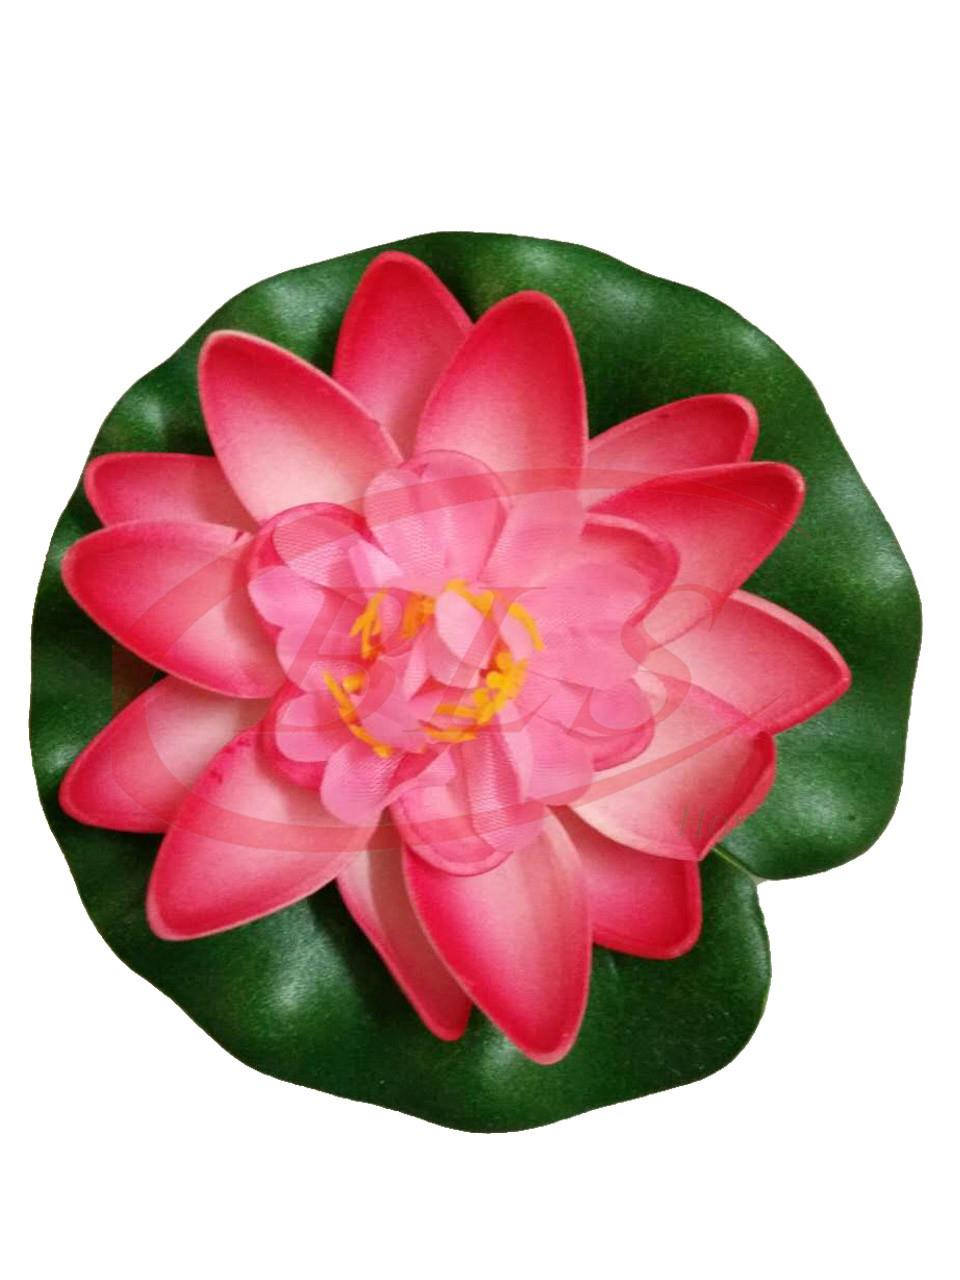 FLOATING ARTIFICIAL LOTUS FLOWER 6 (end 12/11/2019 8:15 AM)